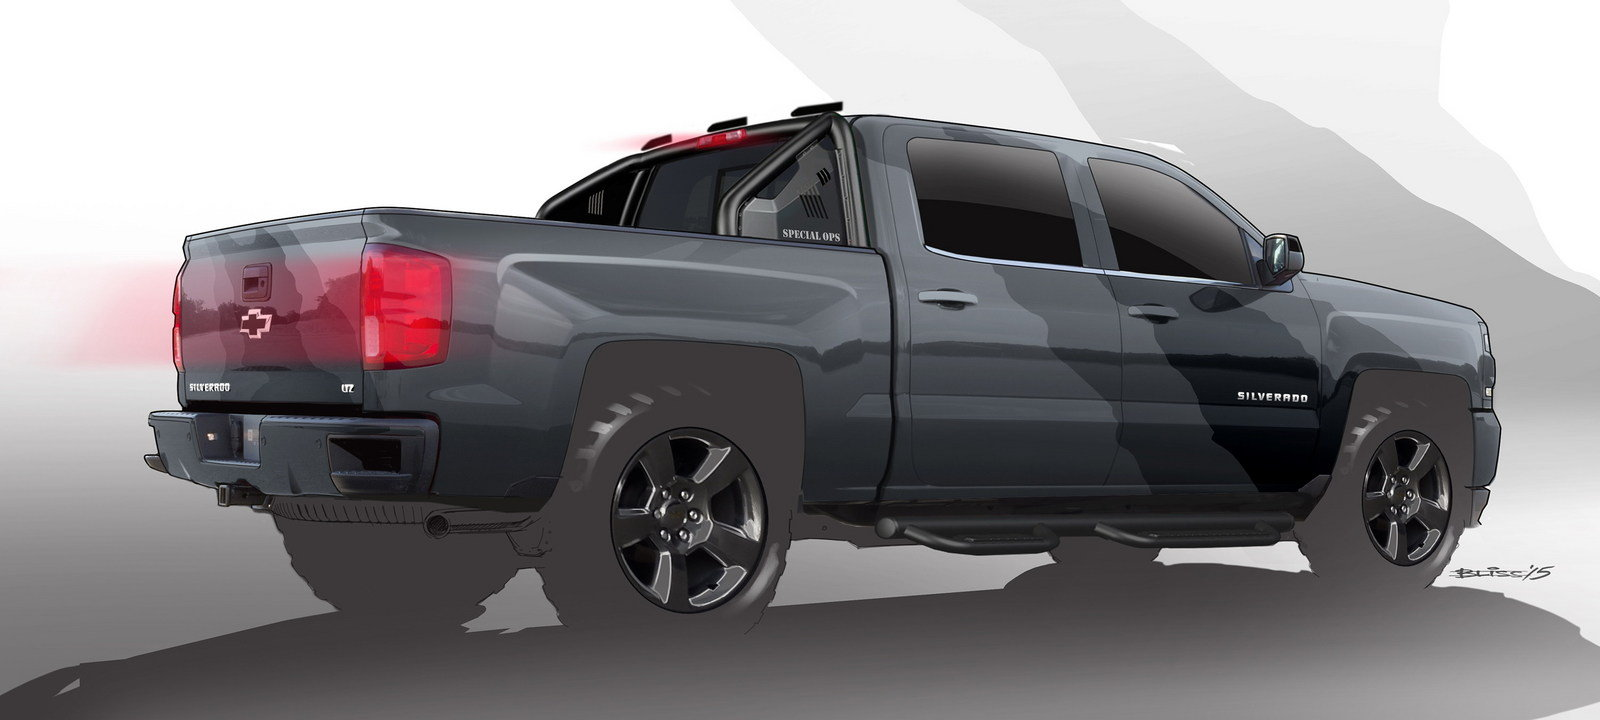 2015 chevrolet silverado special ops concept picture 653858 truck review top speed. Black Bedroom Furniture Sets. Home Design Ideas